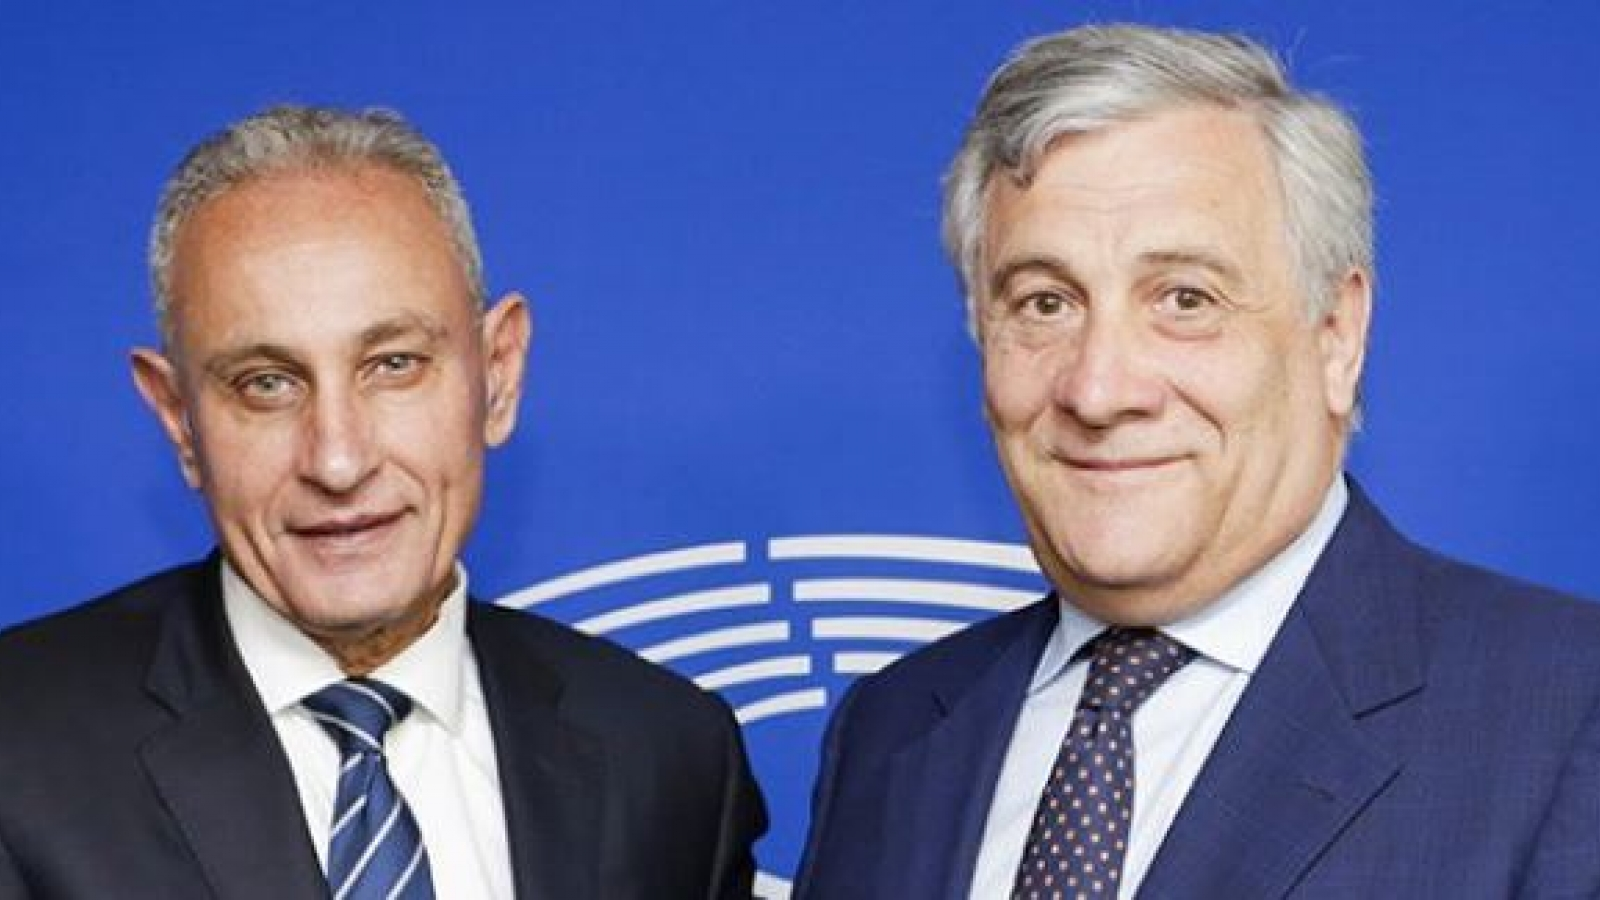 Designated UfM Secretary General Nasser Kamel and European Parliament President Antonio Tajani